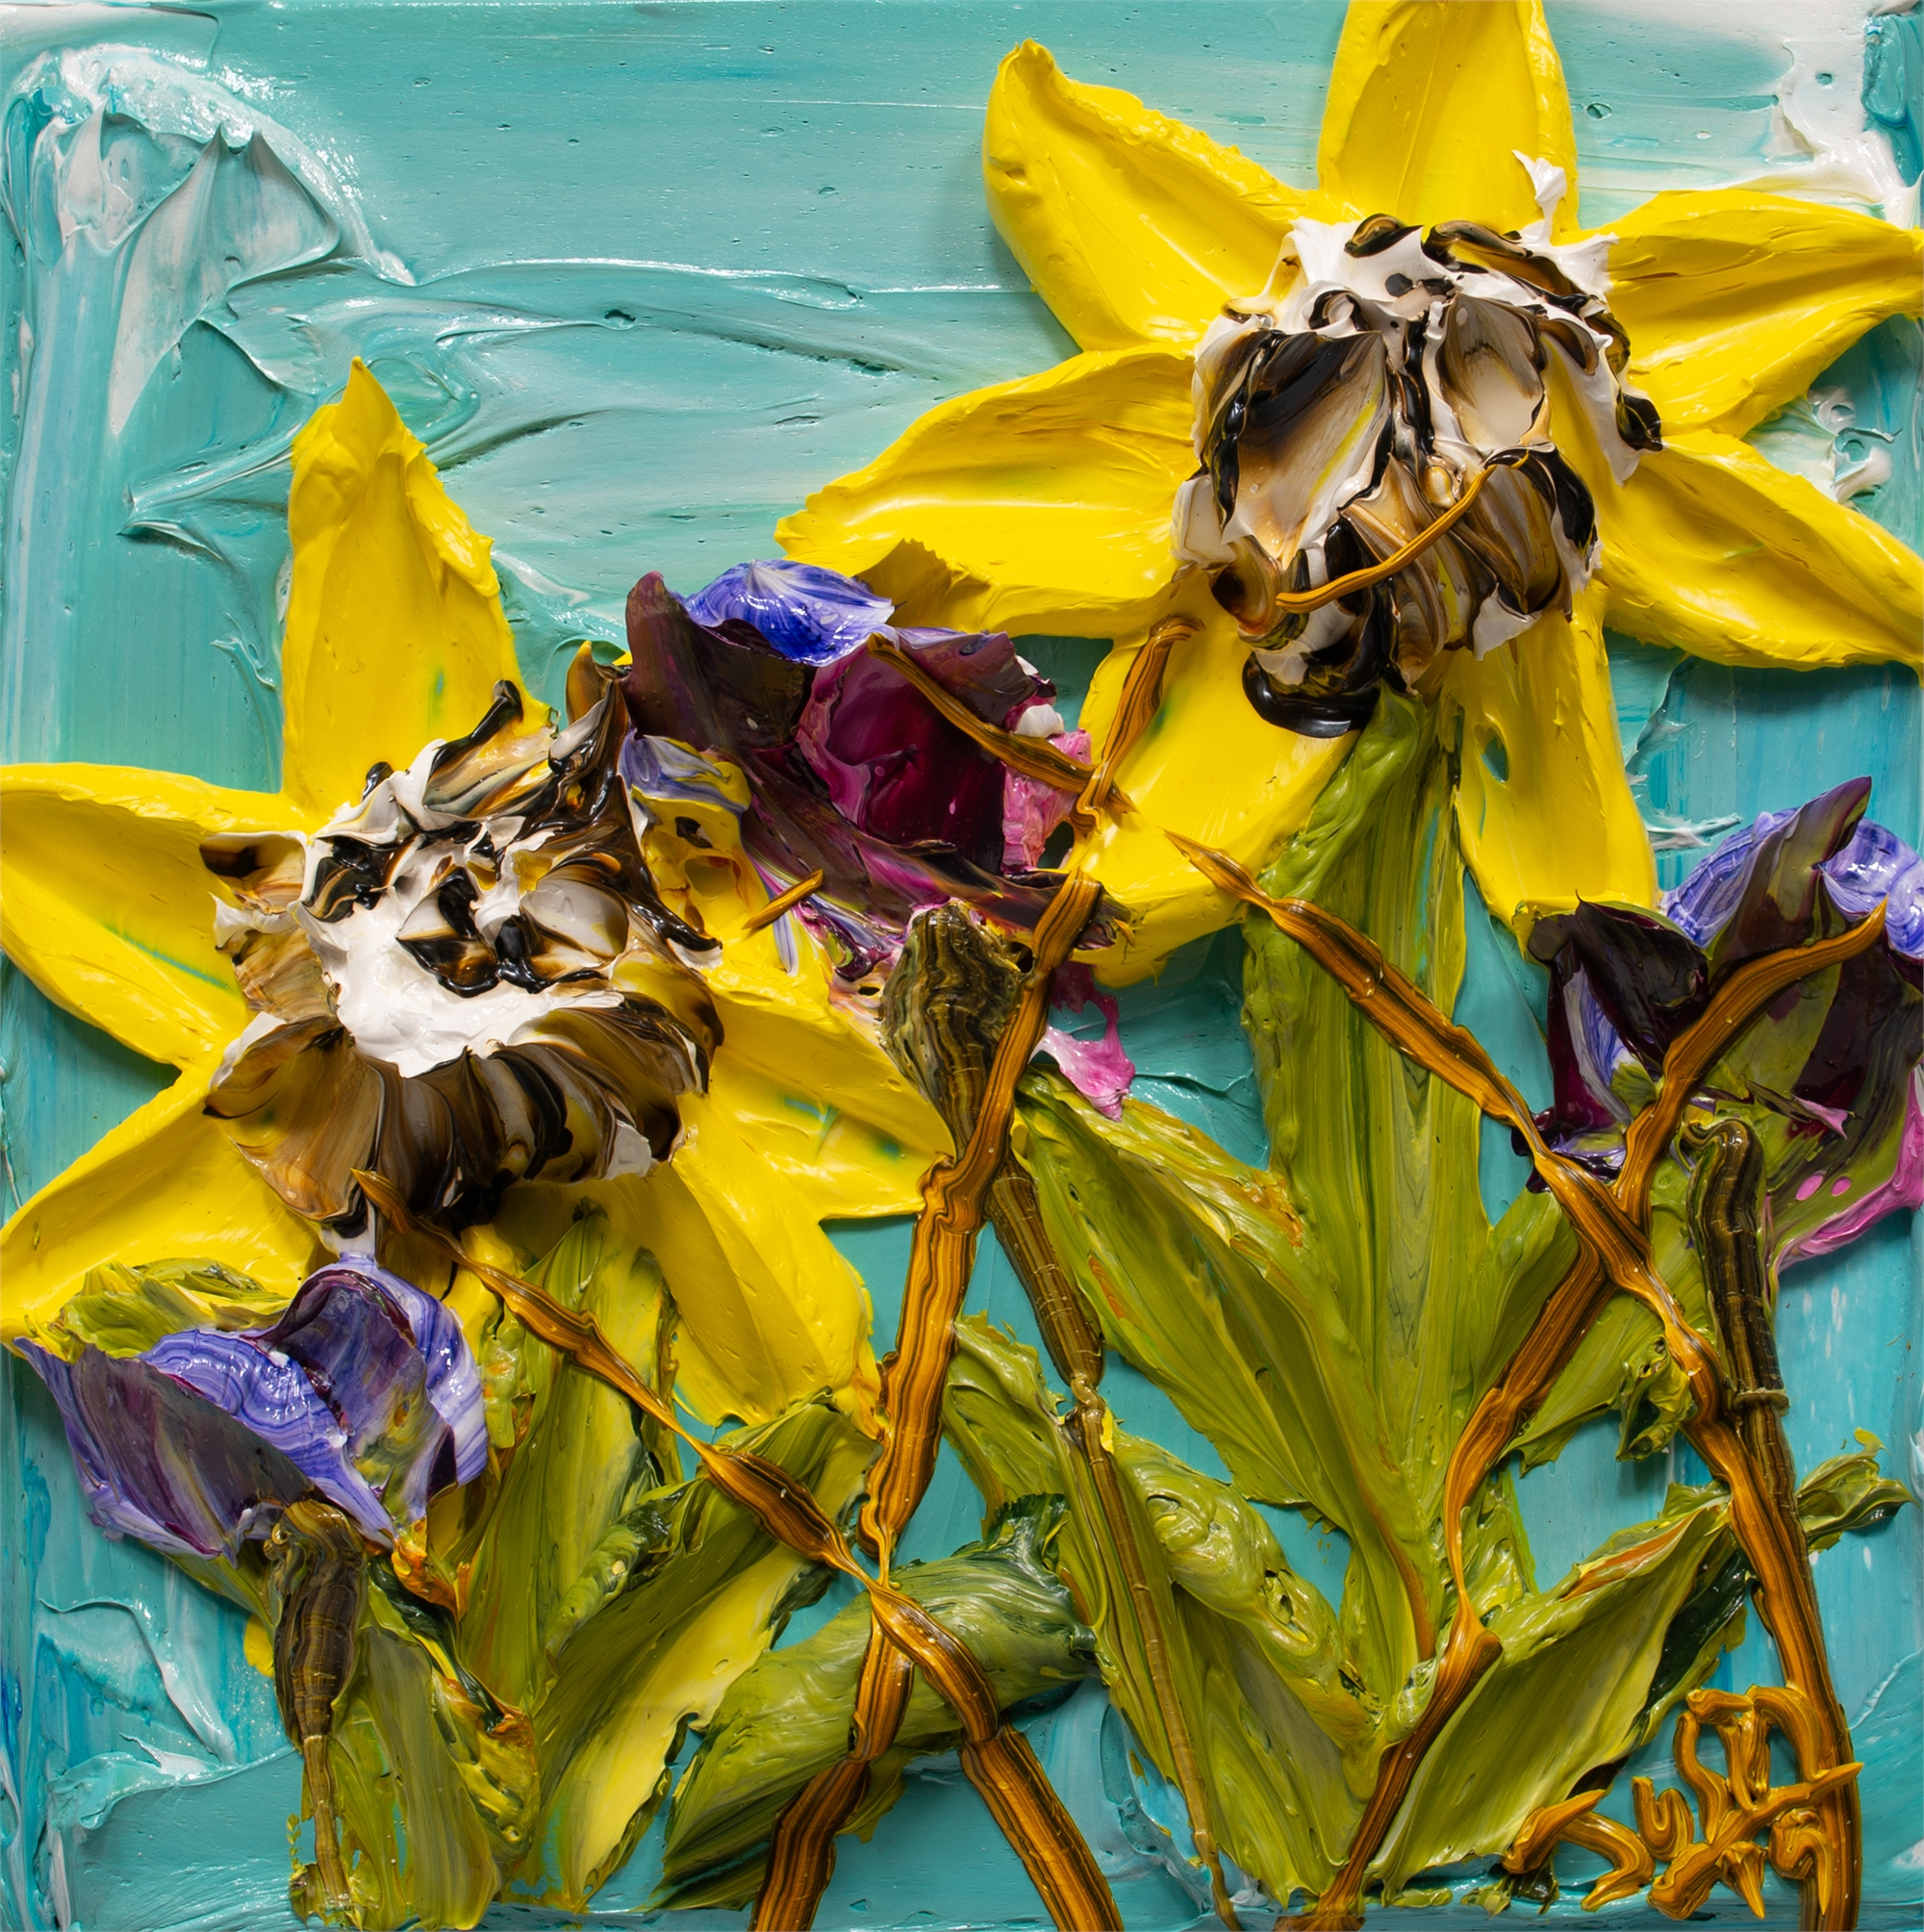 SUNFLOWERS-SF-12X12-2019-189 by JUSTIN GAFFREY